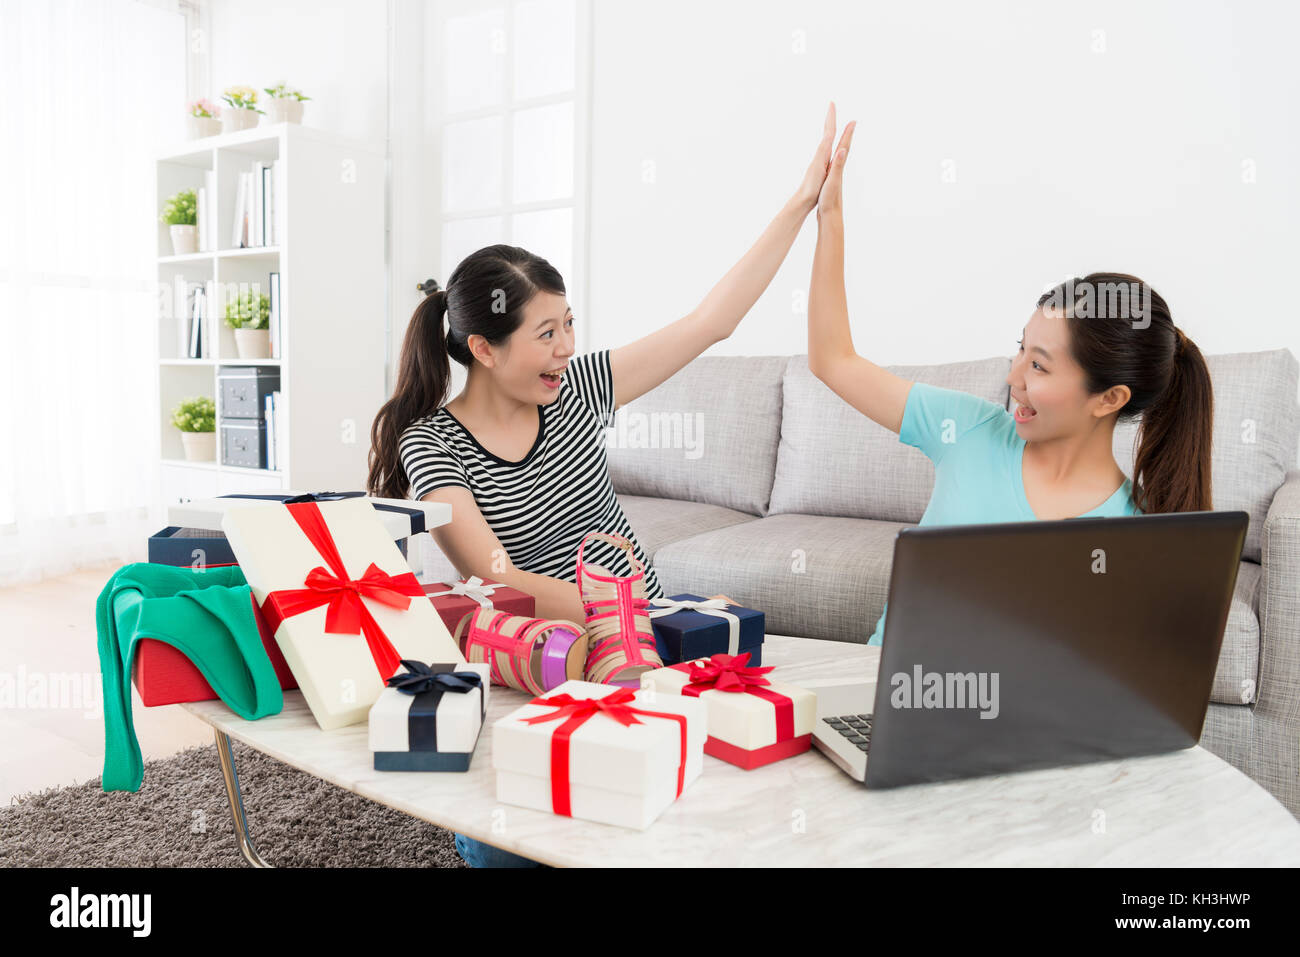 pretty happy women using computer online shopping at home and stock photo 165422370 alamy. Black Bedroom Furniture Sets. Home Design Ideas